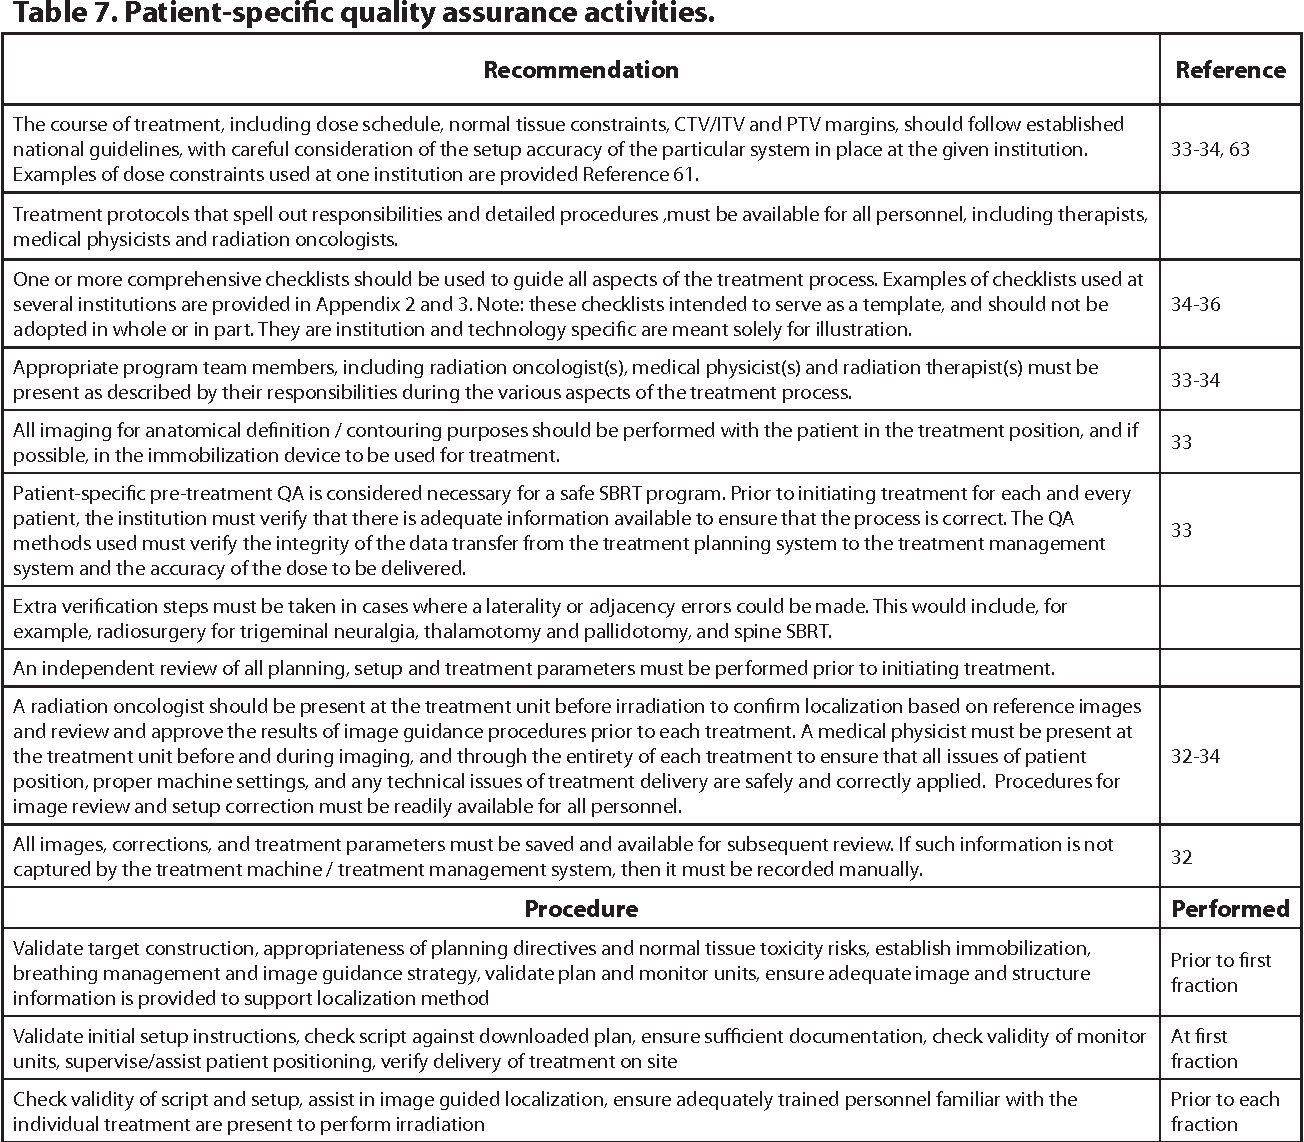 Table 7 from Quality and safety considerations in